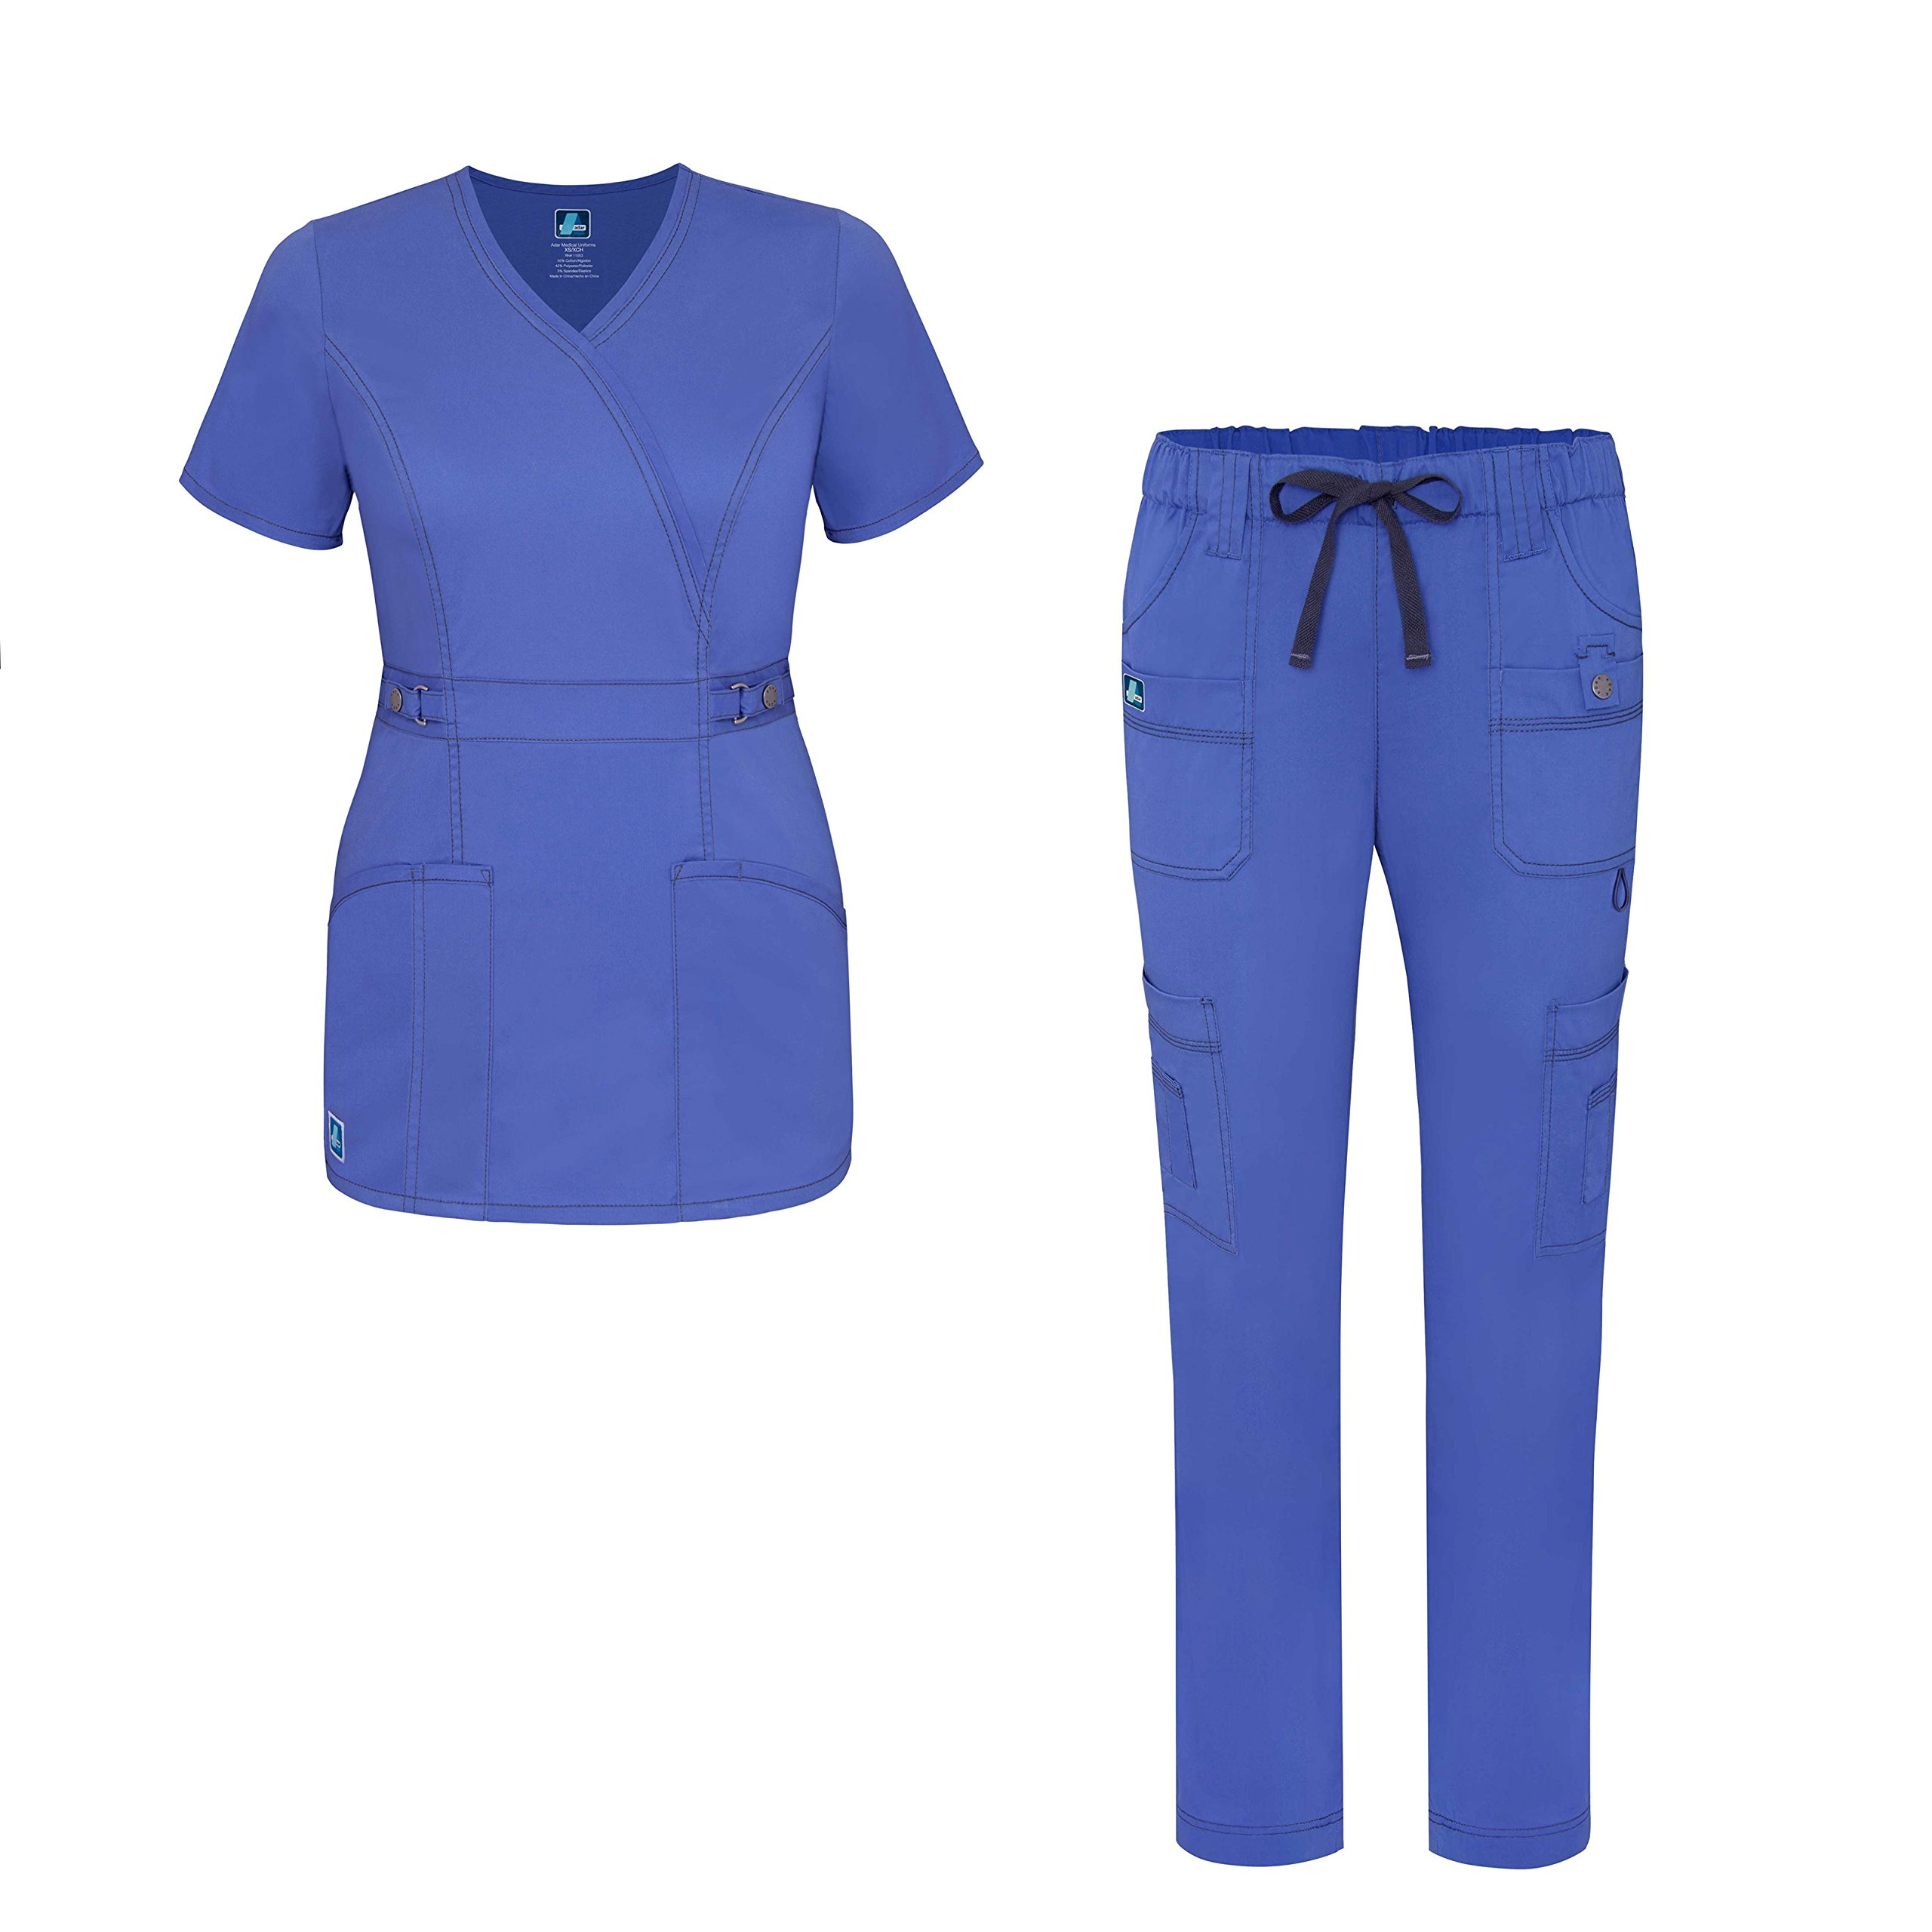 Pop-Stretch Jr. Fit Women Scrub Set - Crossover Scrub Top and Low Rise Slim Pants - 3505 - Ceil Blue - XS